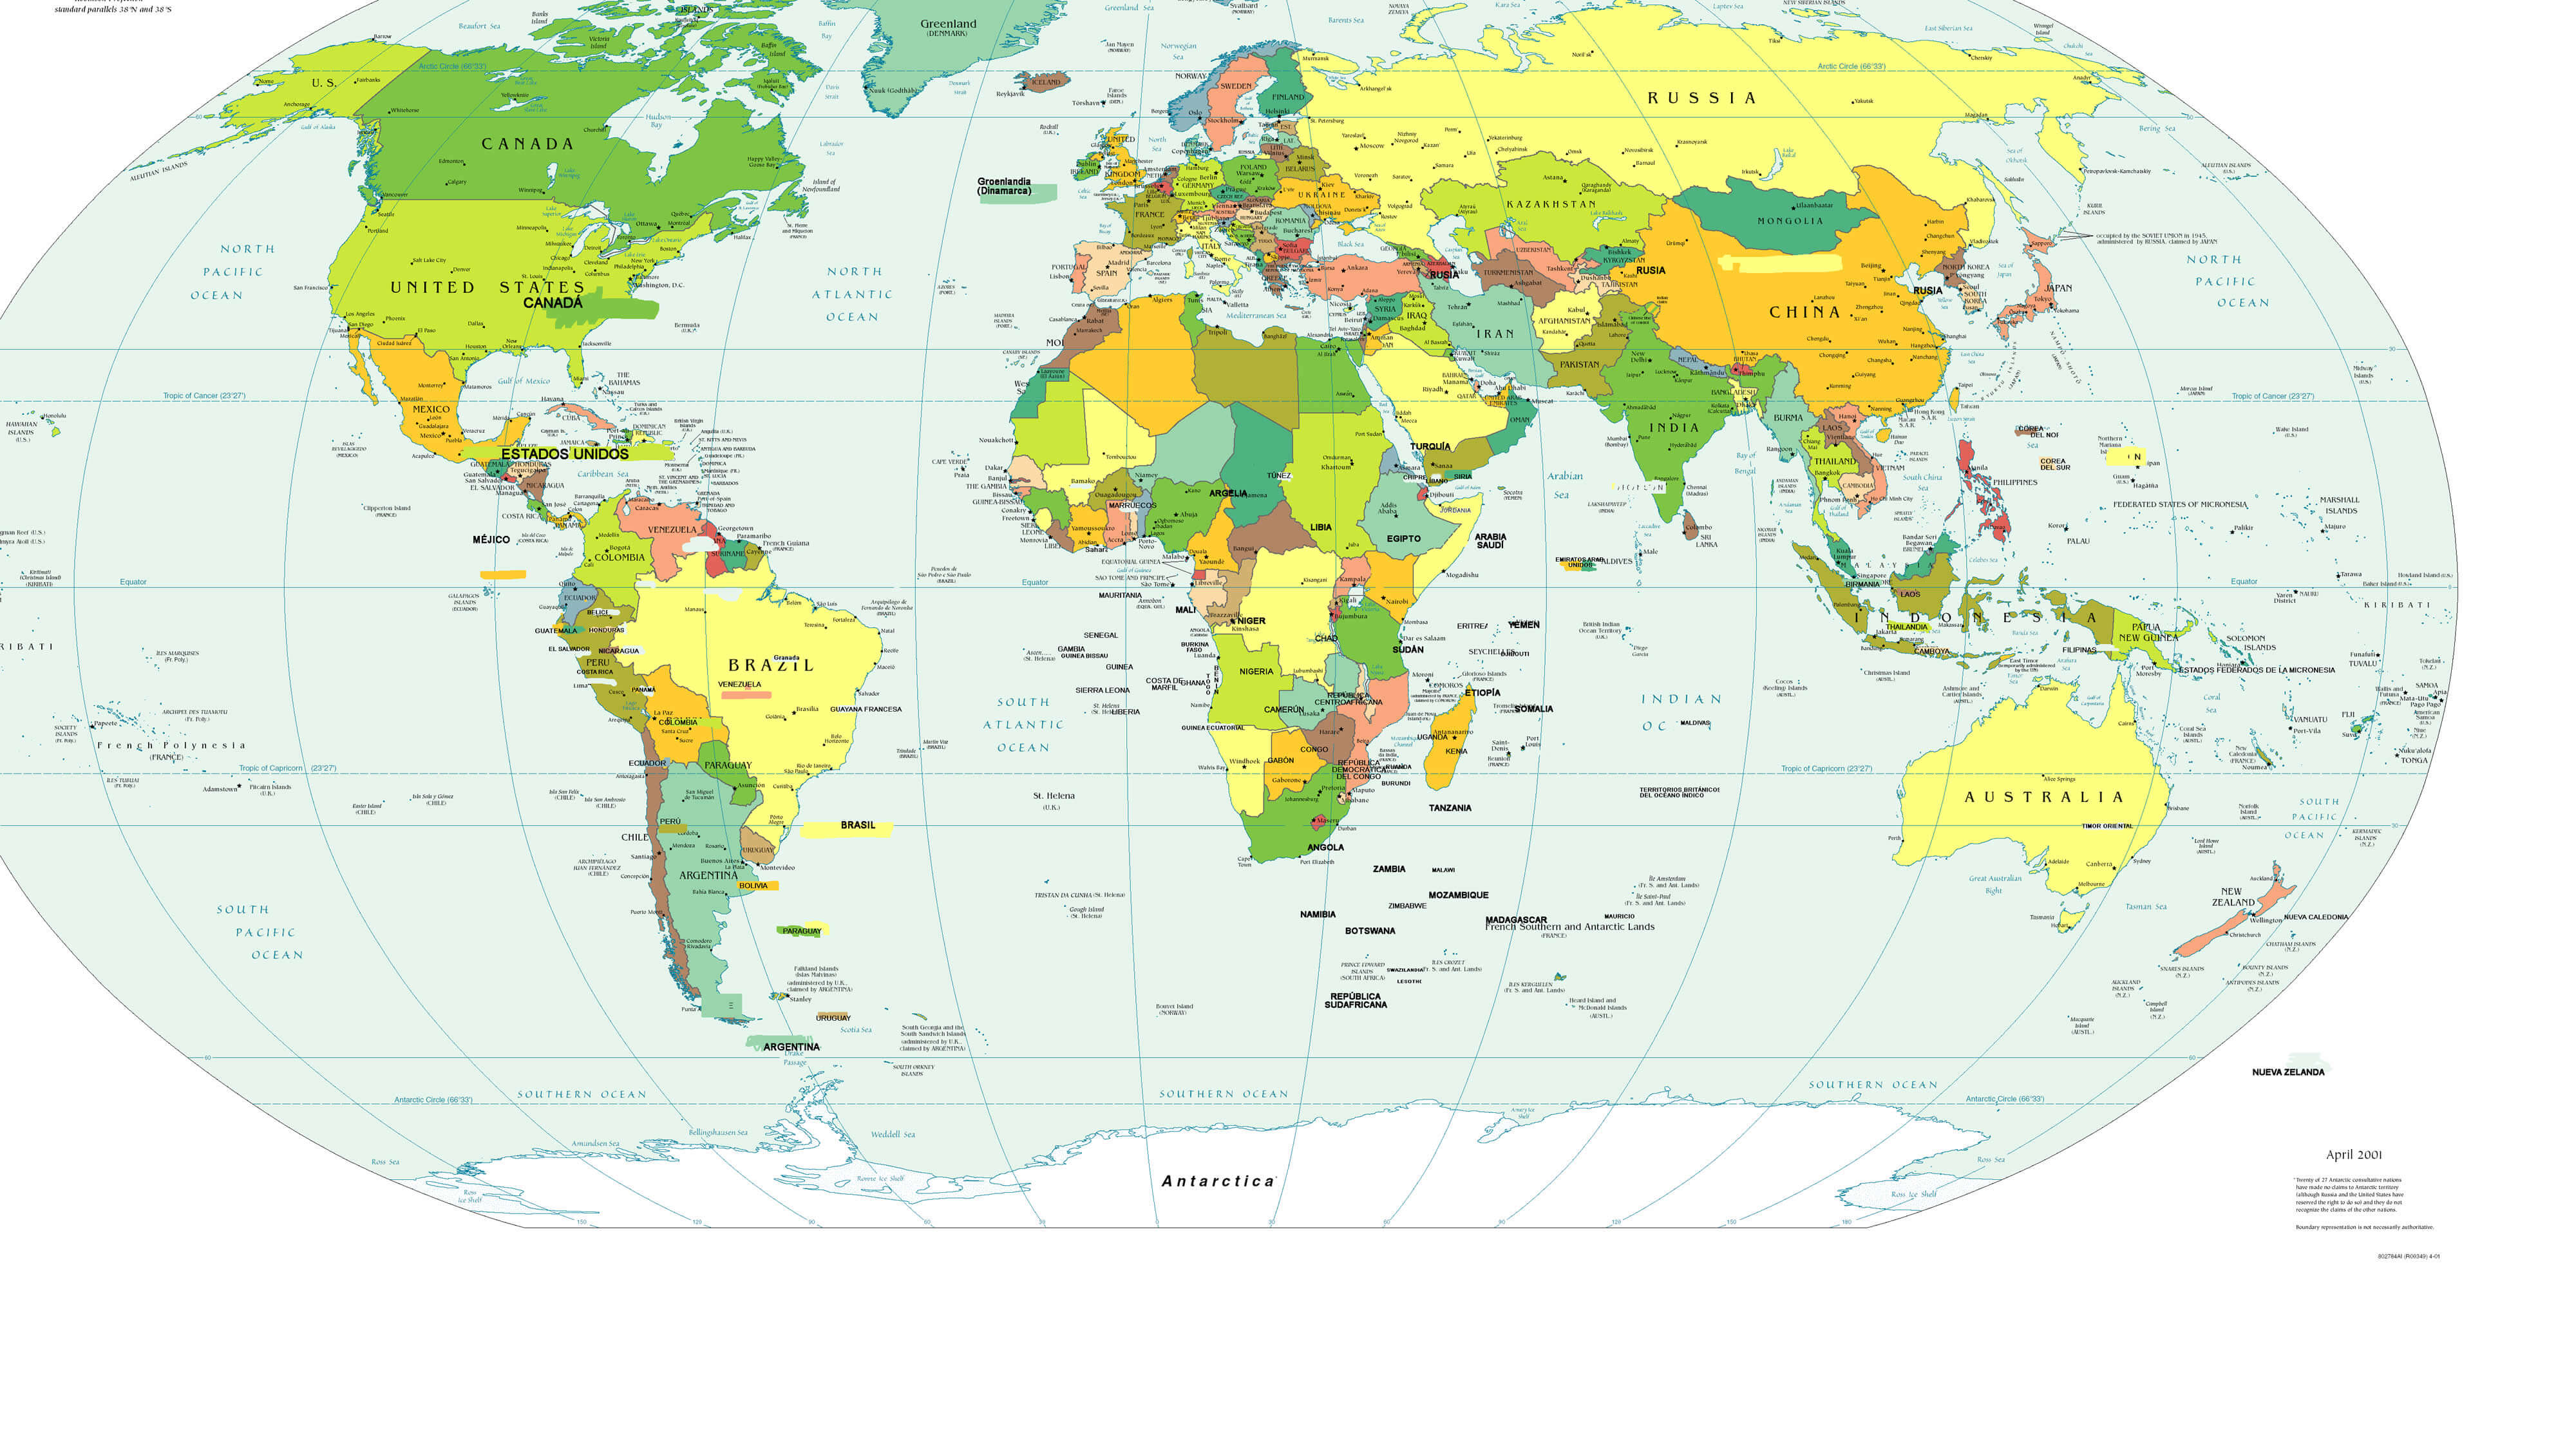 World maps in different languages 4 guide of the world world map in slovenian language gumiabroncs Gallery